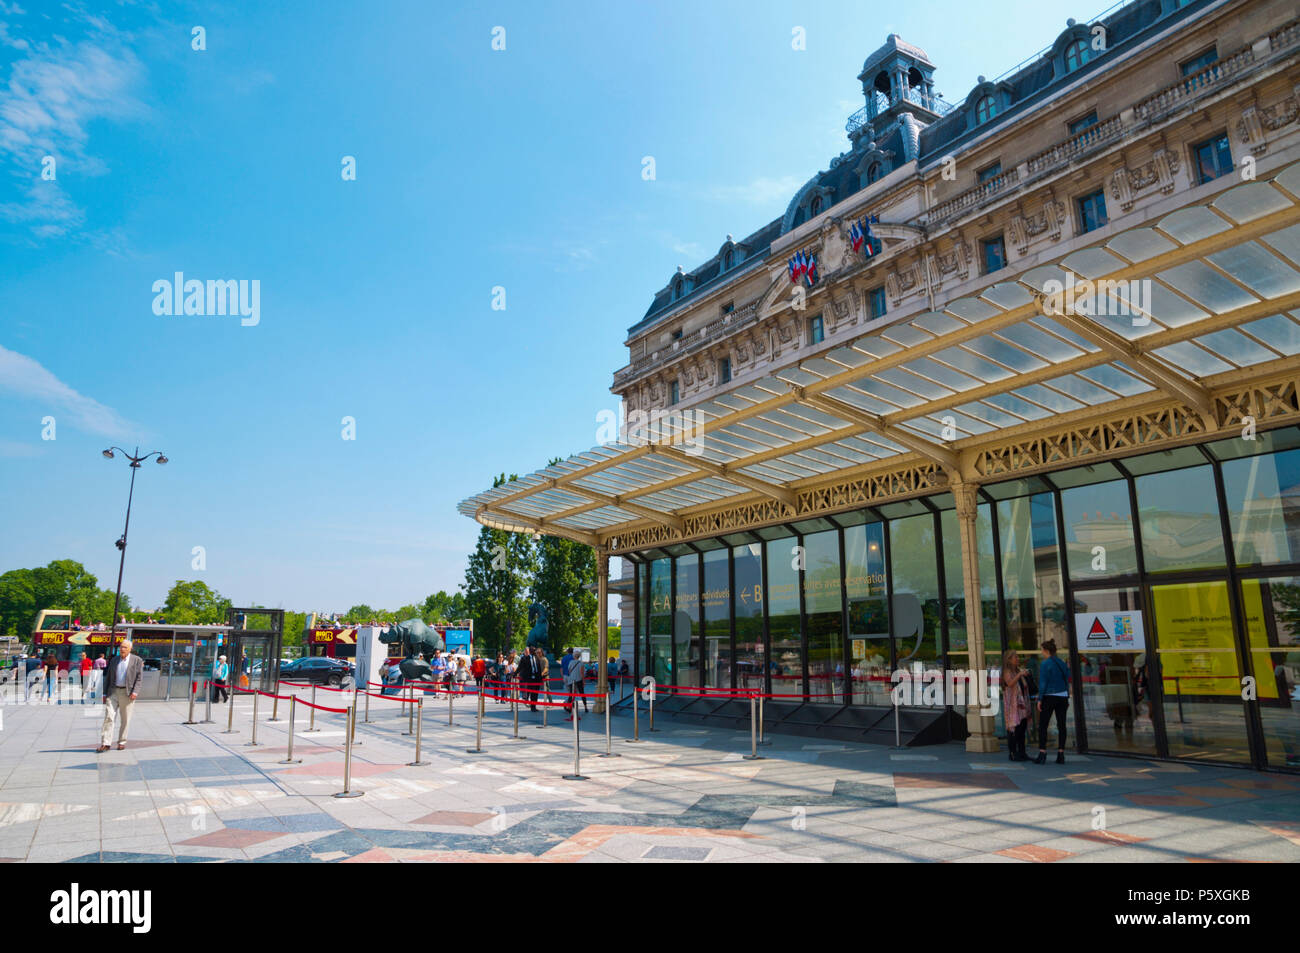 Gare Musee d'Orsay, St Germain des Pres, Left Bank, Paris, France - Stock Image